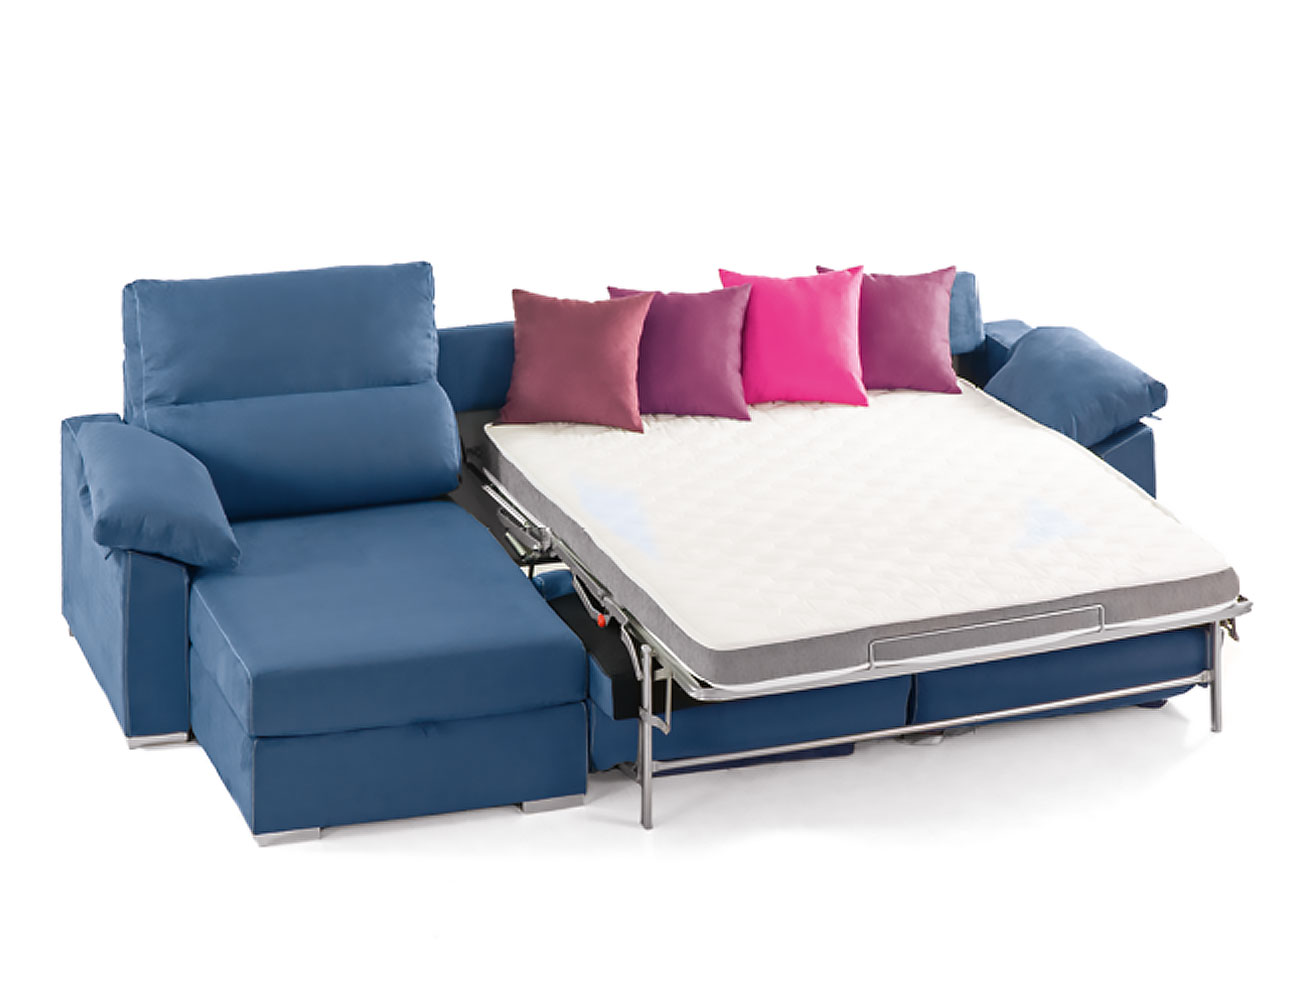 Sof cama con chaiselongue y sistema de apertura italiano for Muebles con sofa cama